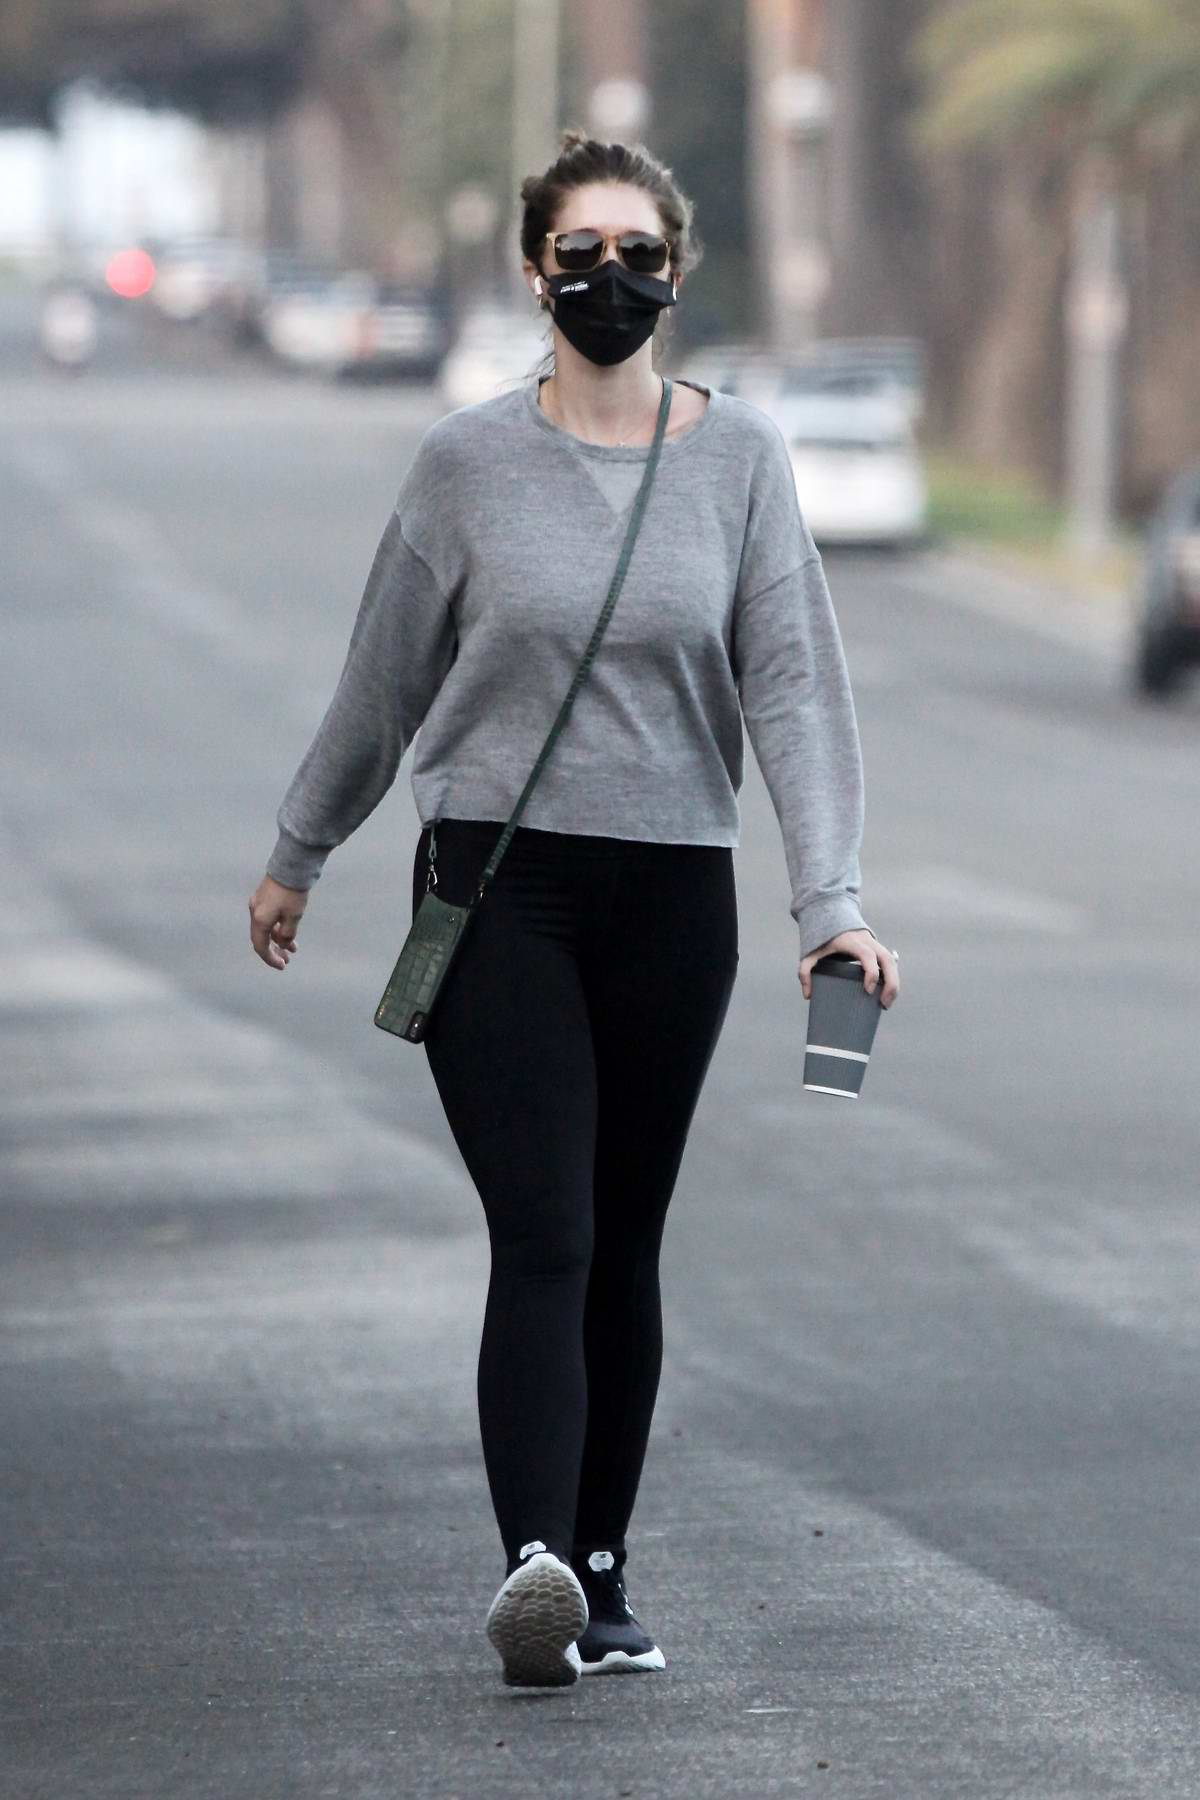 Katherine Schwarzenegger shows off her fit post baby figure while out for a walk in Santa Monica, California